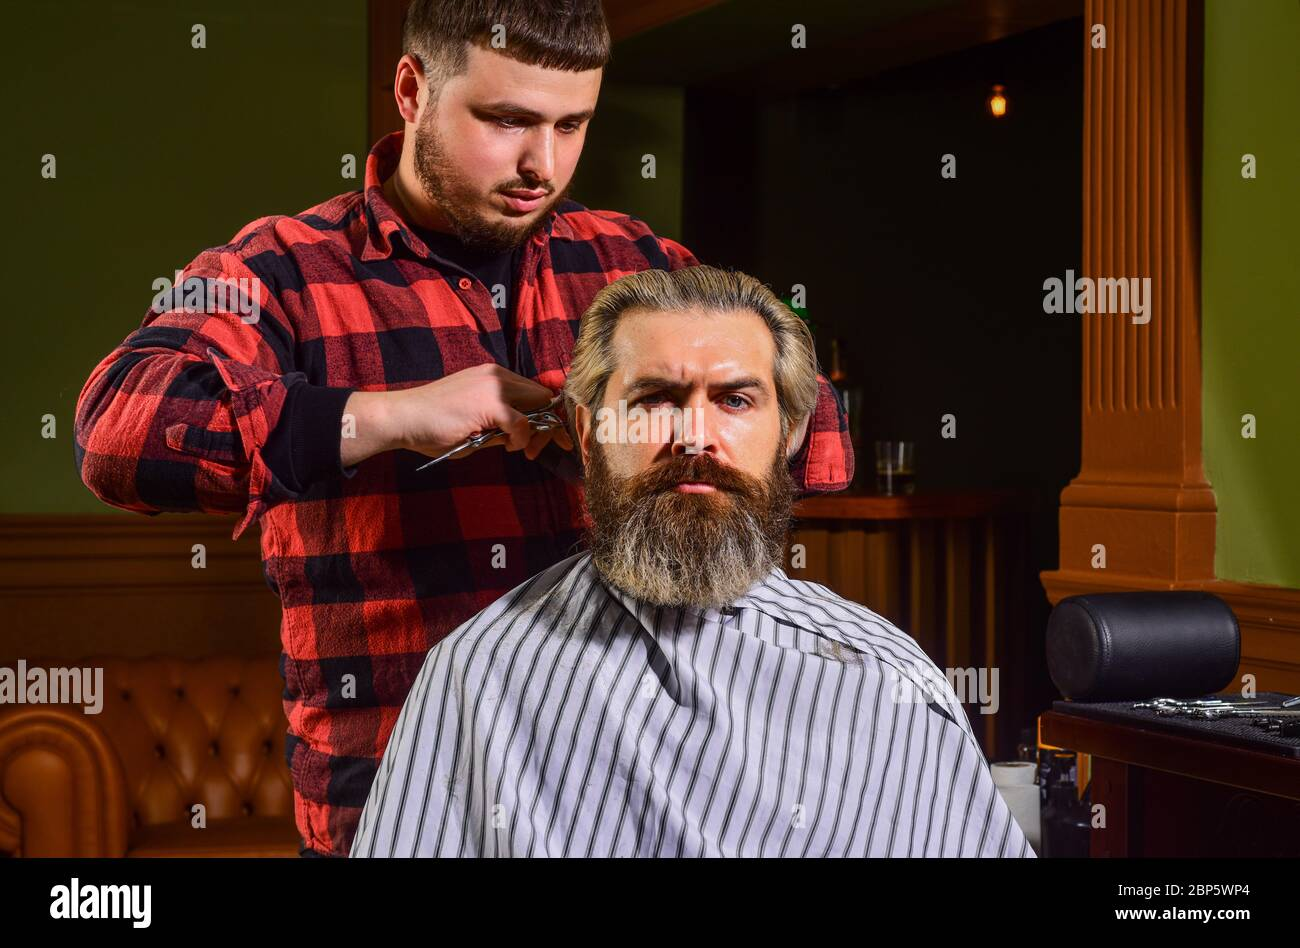 Donate Hair Donation And Charity Concept Guy With Dyed Blond Hair Cut Hair Barber Hairstyle Barbershop Hipster Getting Haircut Sharp Object Near Face And Squirming Distracts Person Holding It Stock Photo